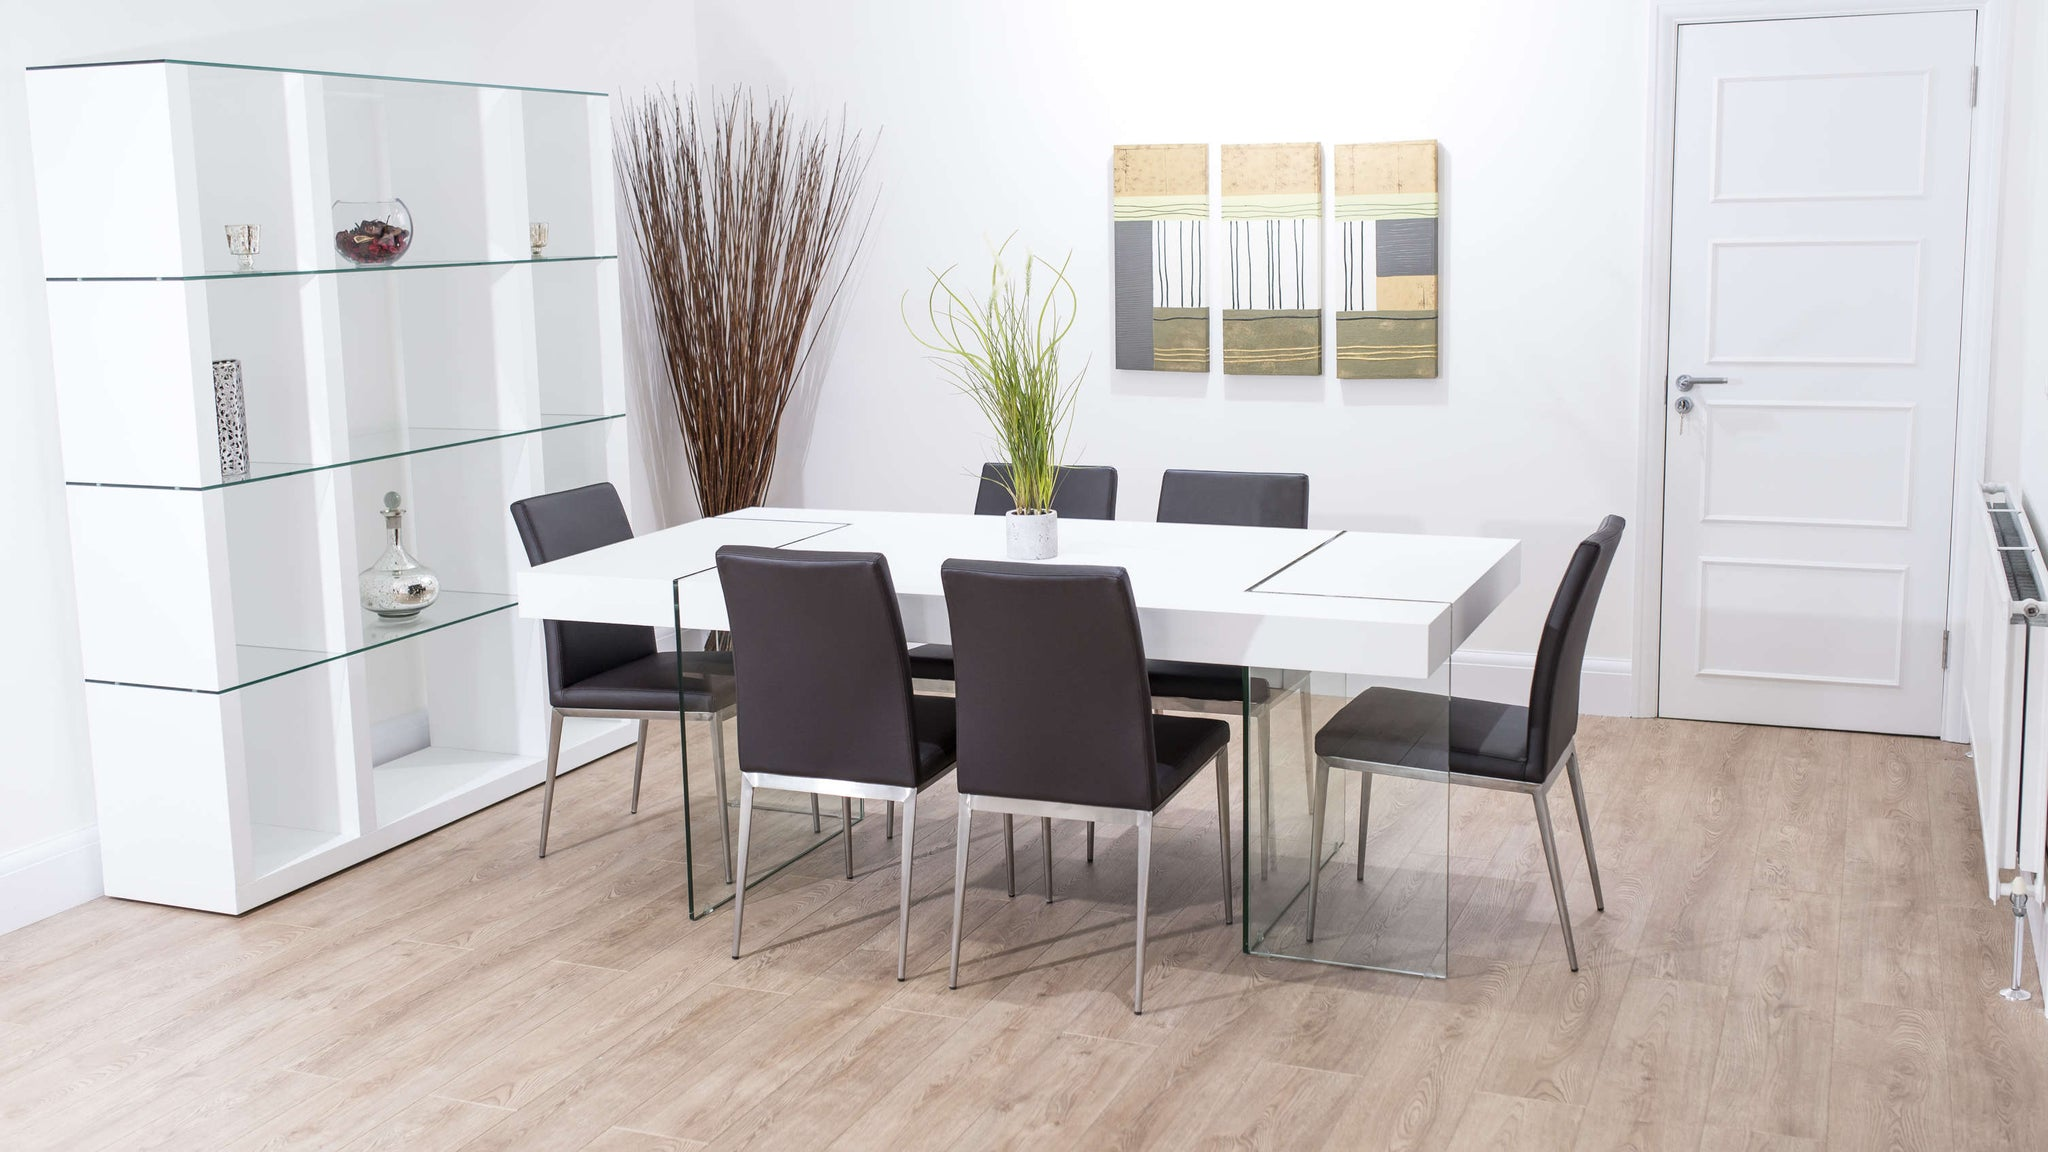 6 Seater Modern Brown and White Dining Set